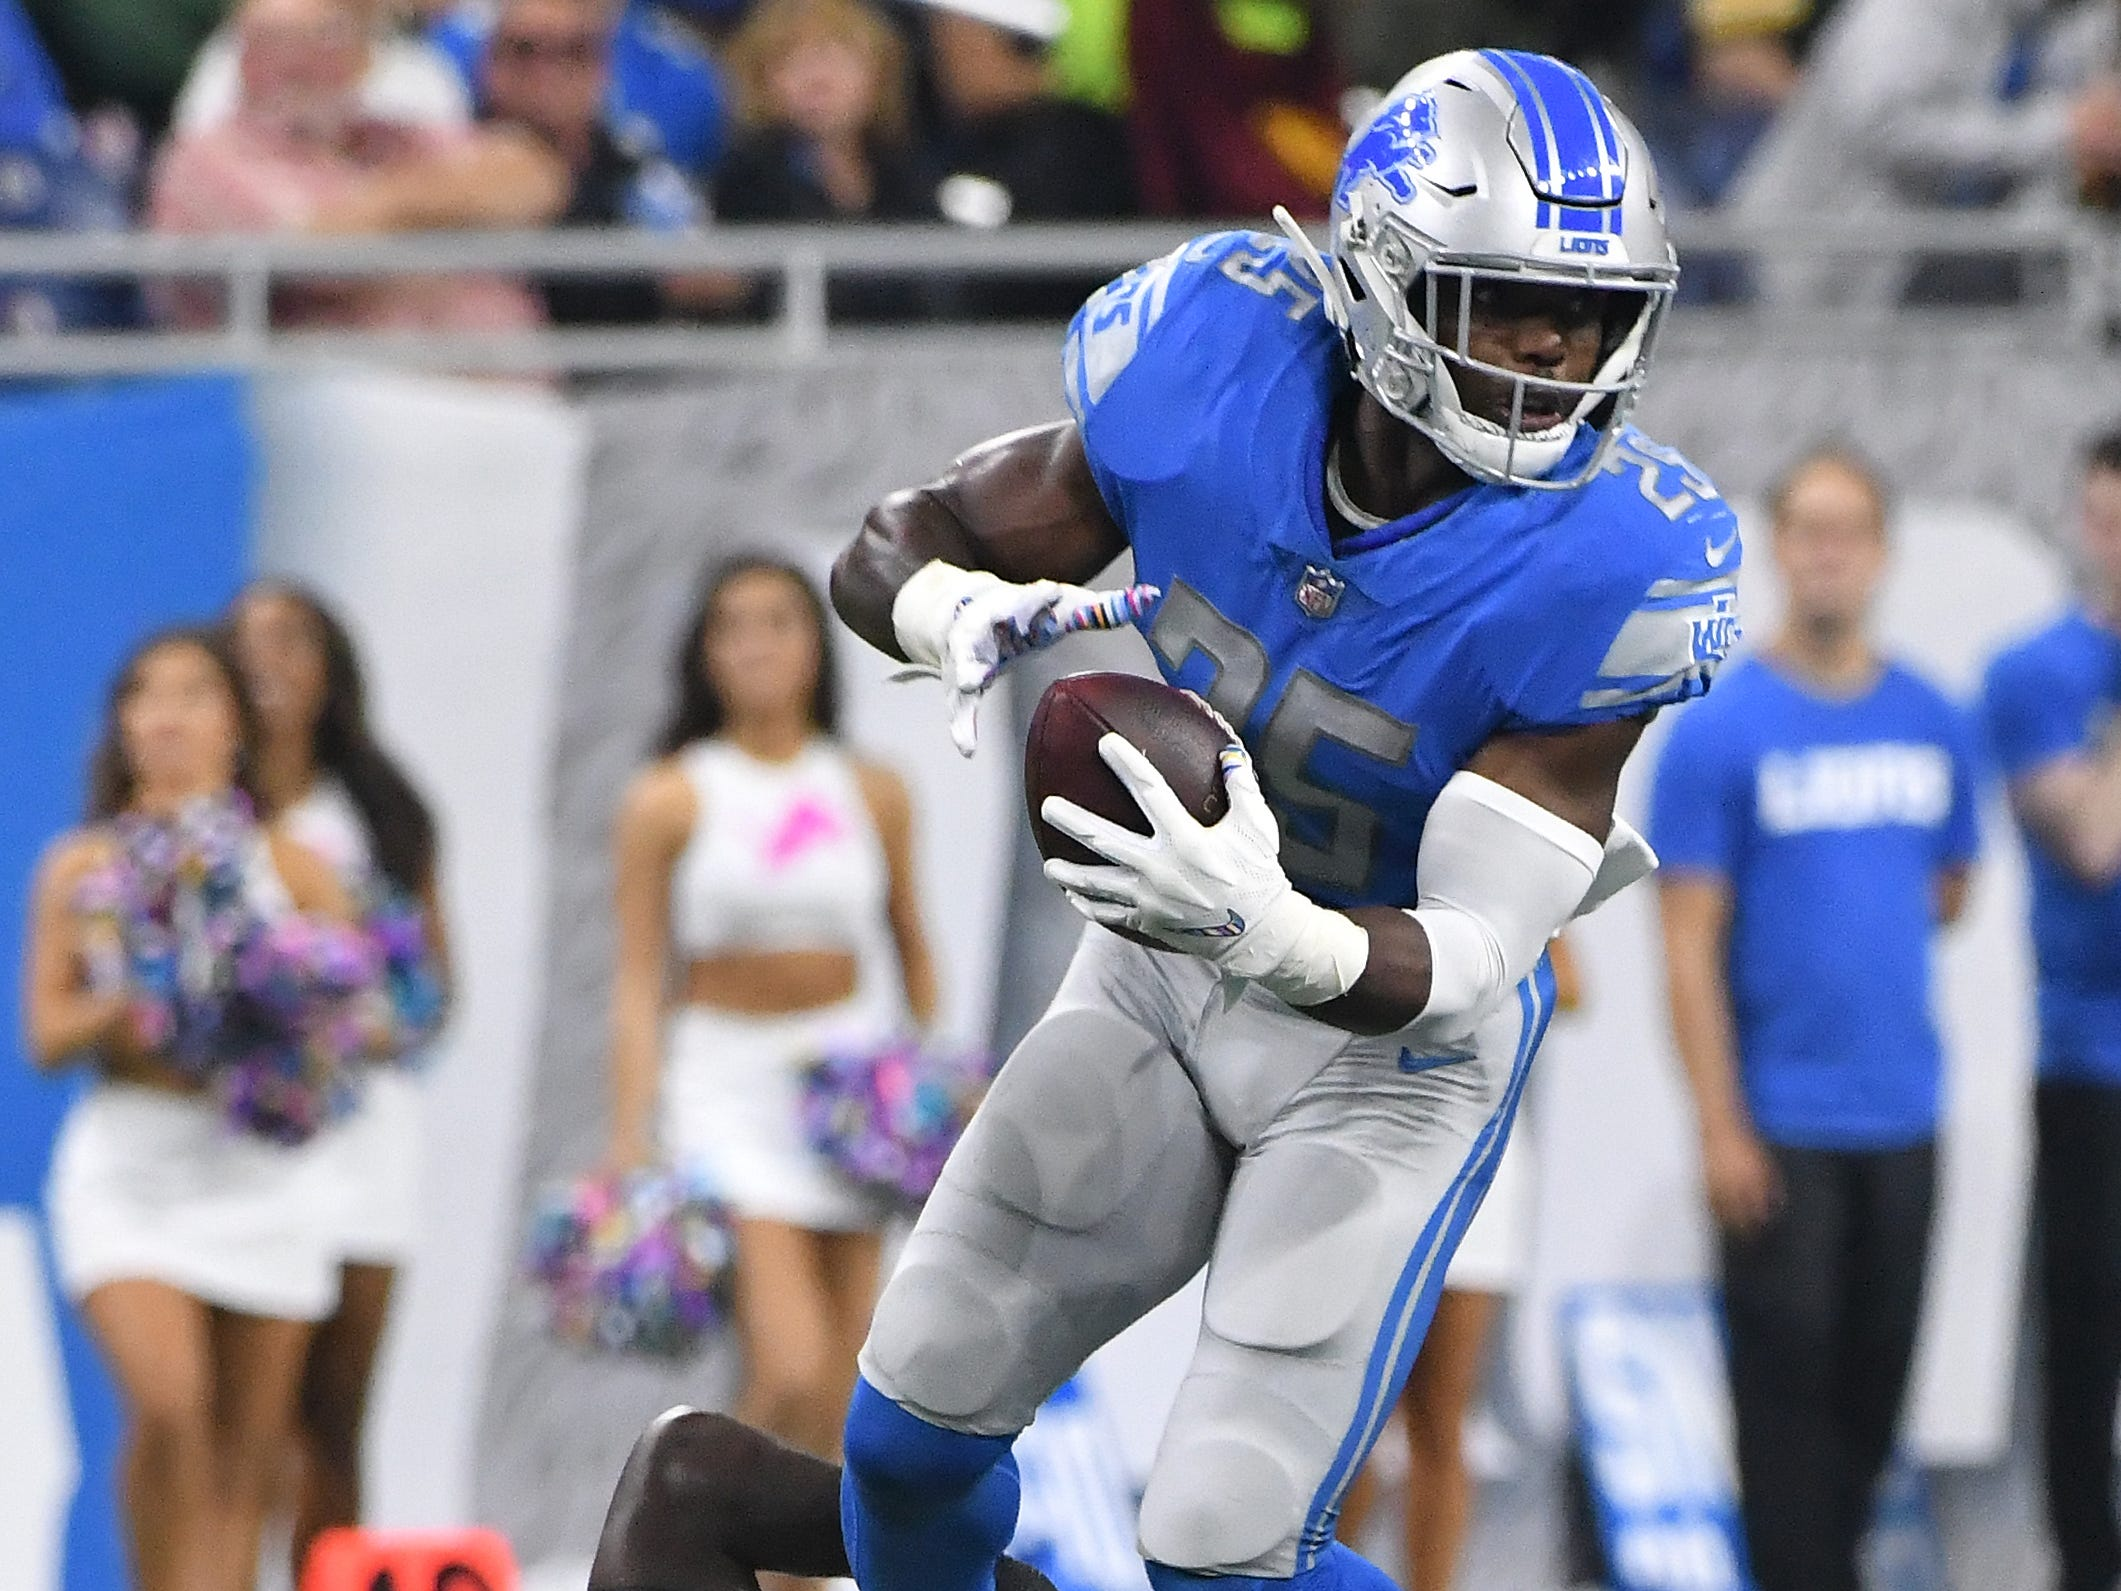 Lions running back Theo Riddick tries to break the grasp of Packers' Oren Burks in the second quarter.